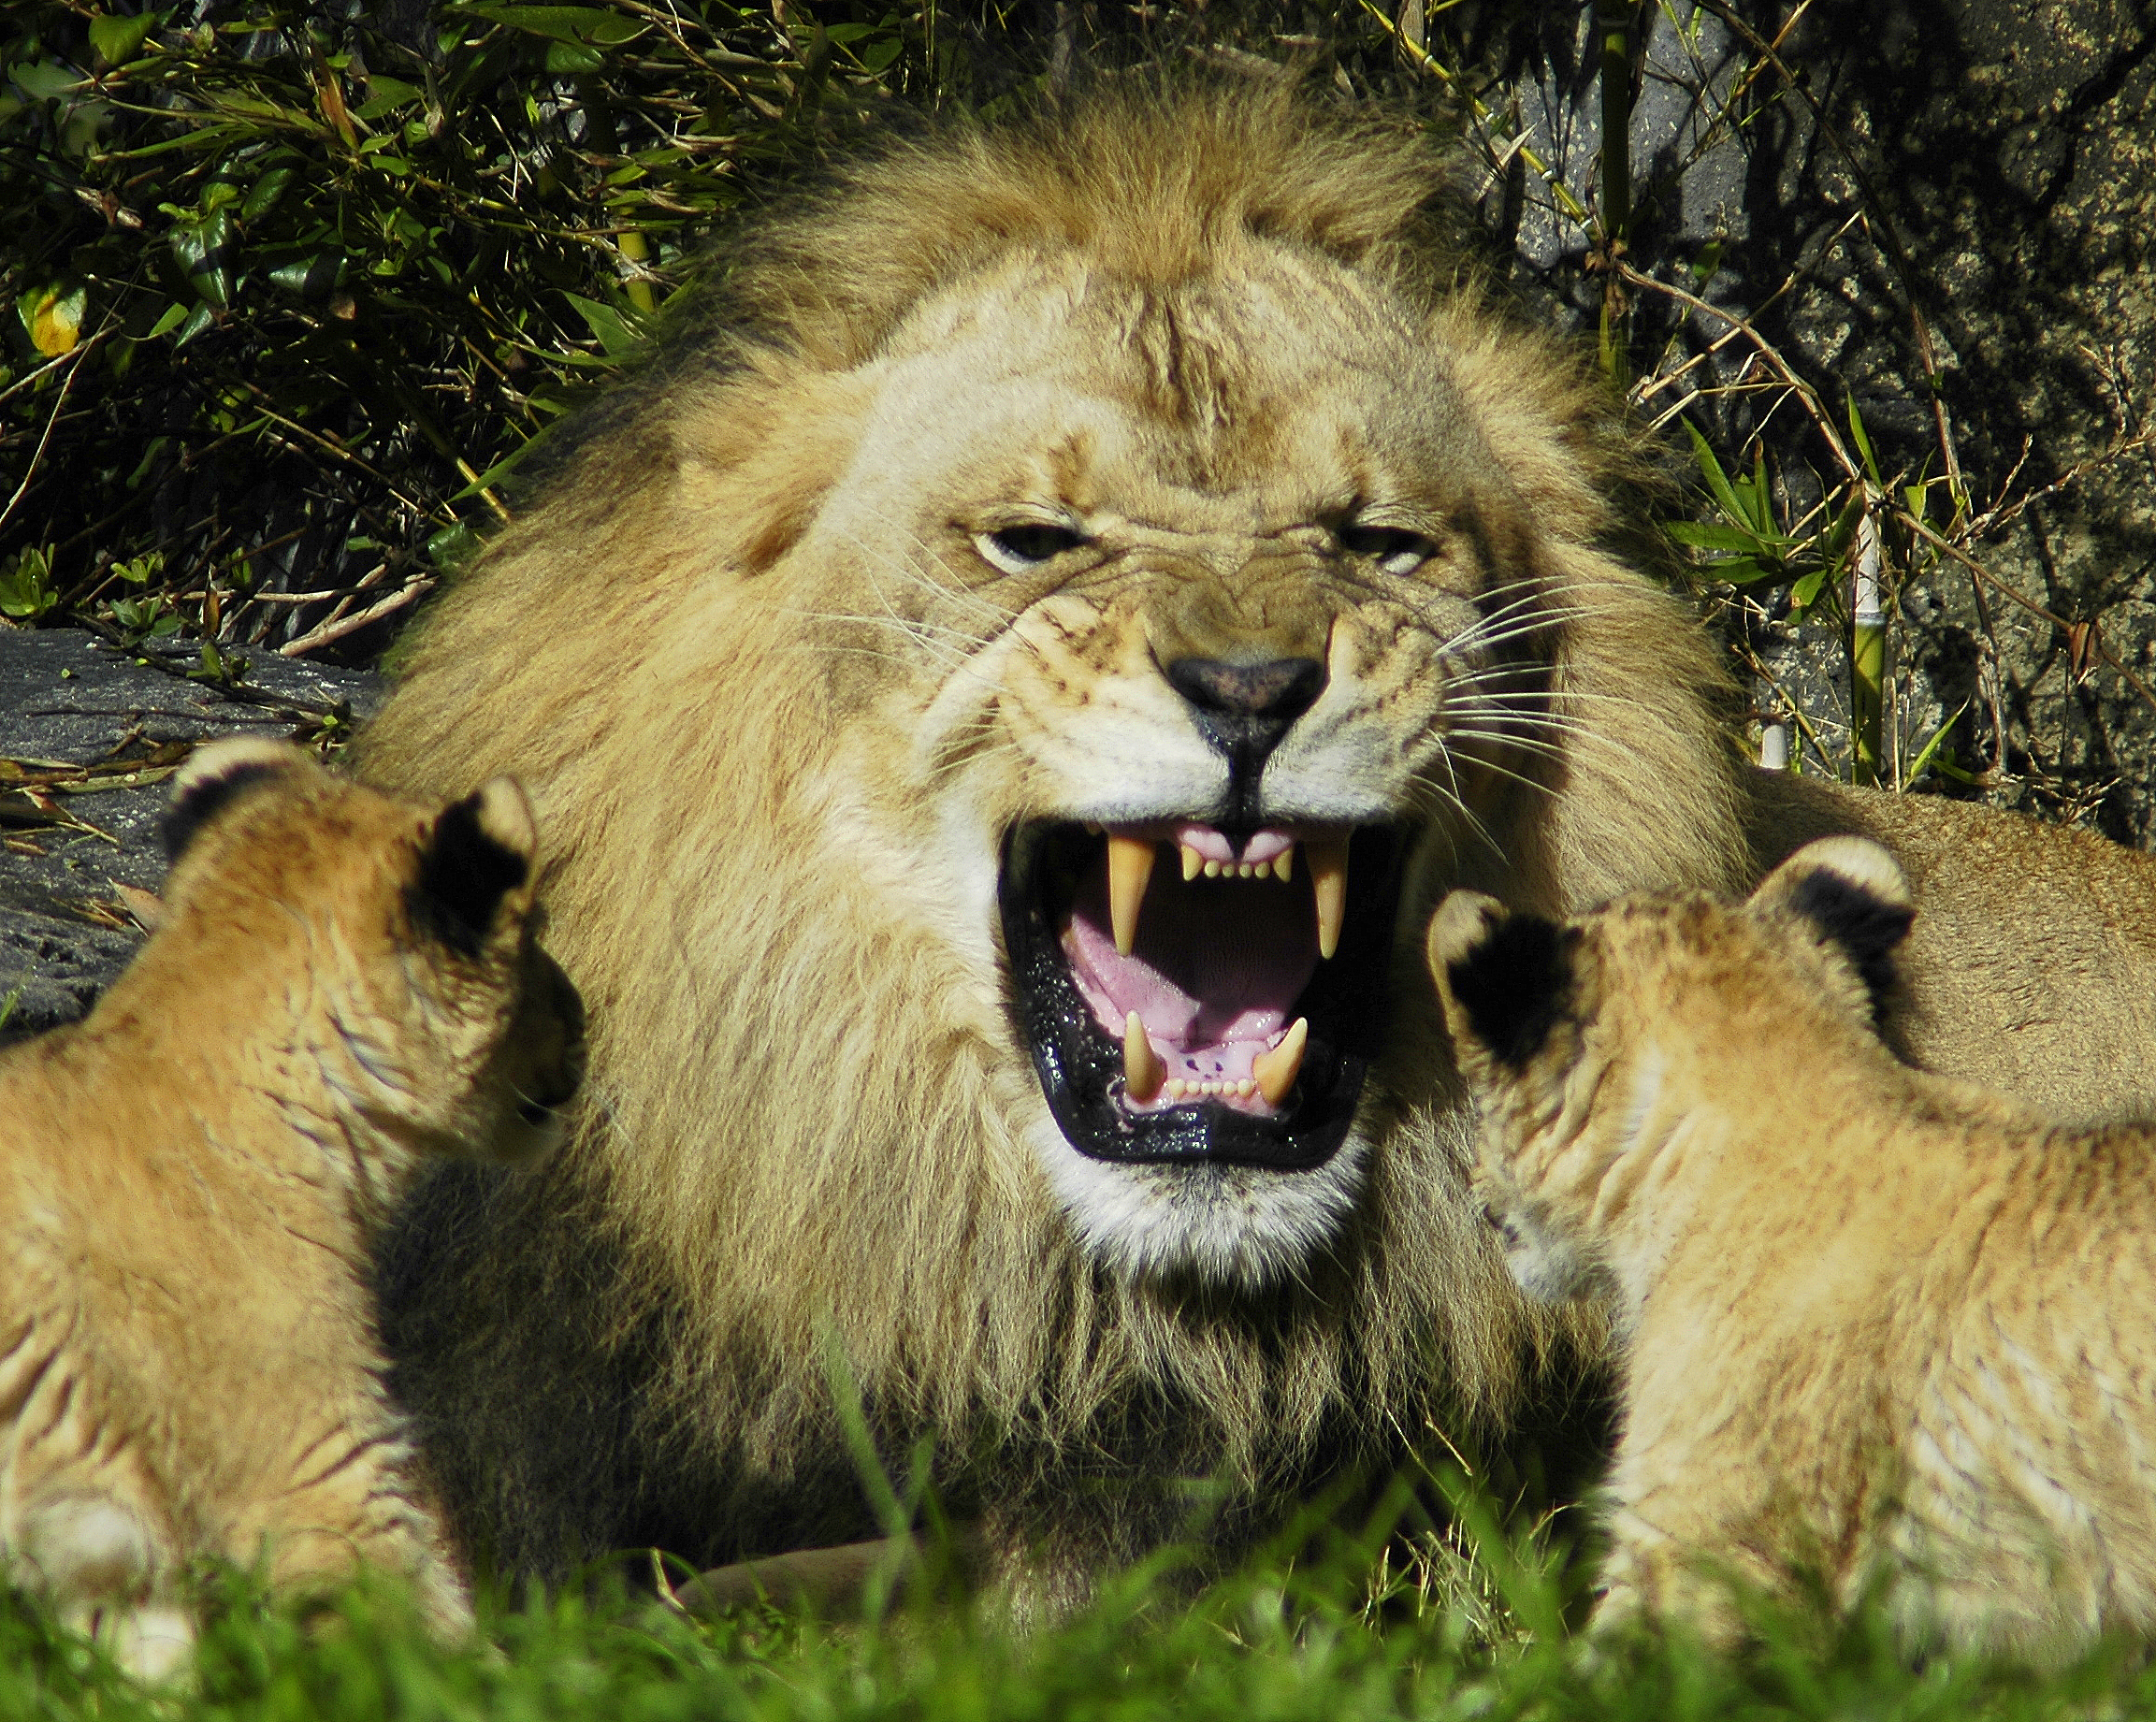 Lion showing its teeth.